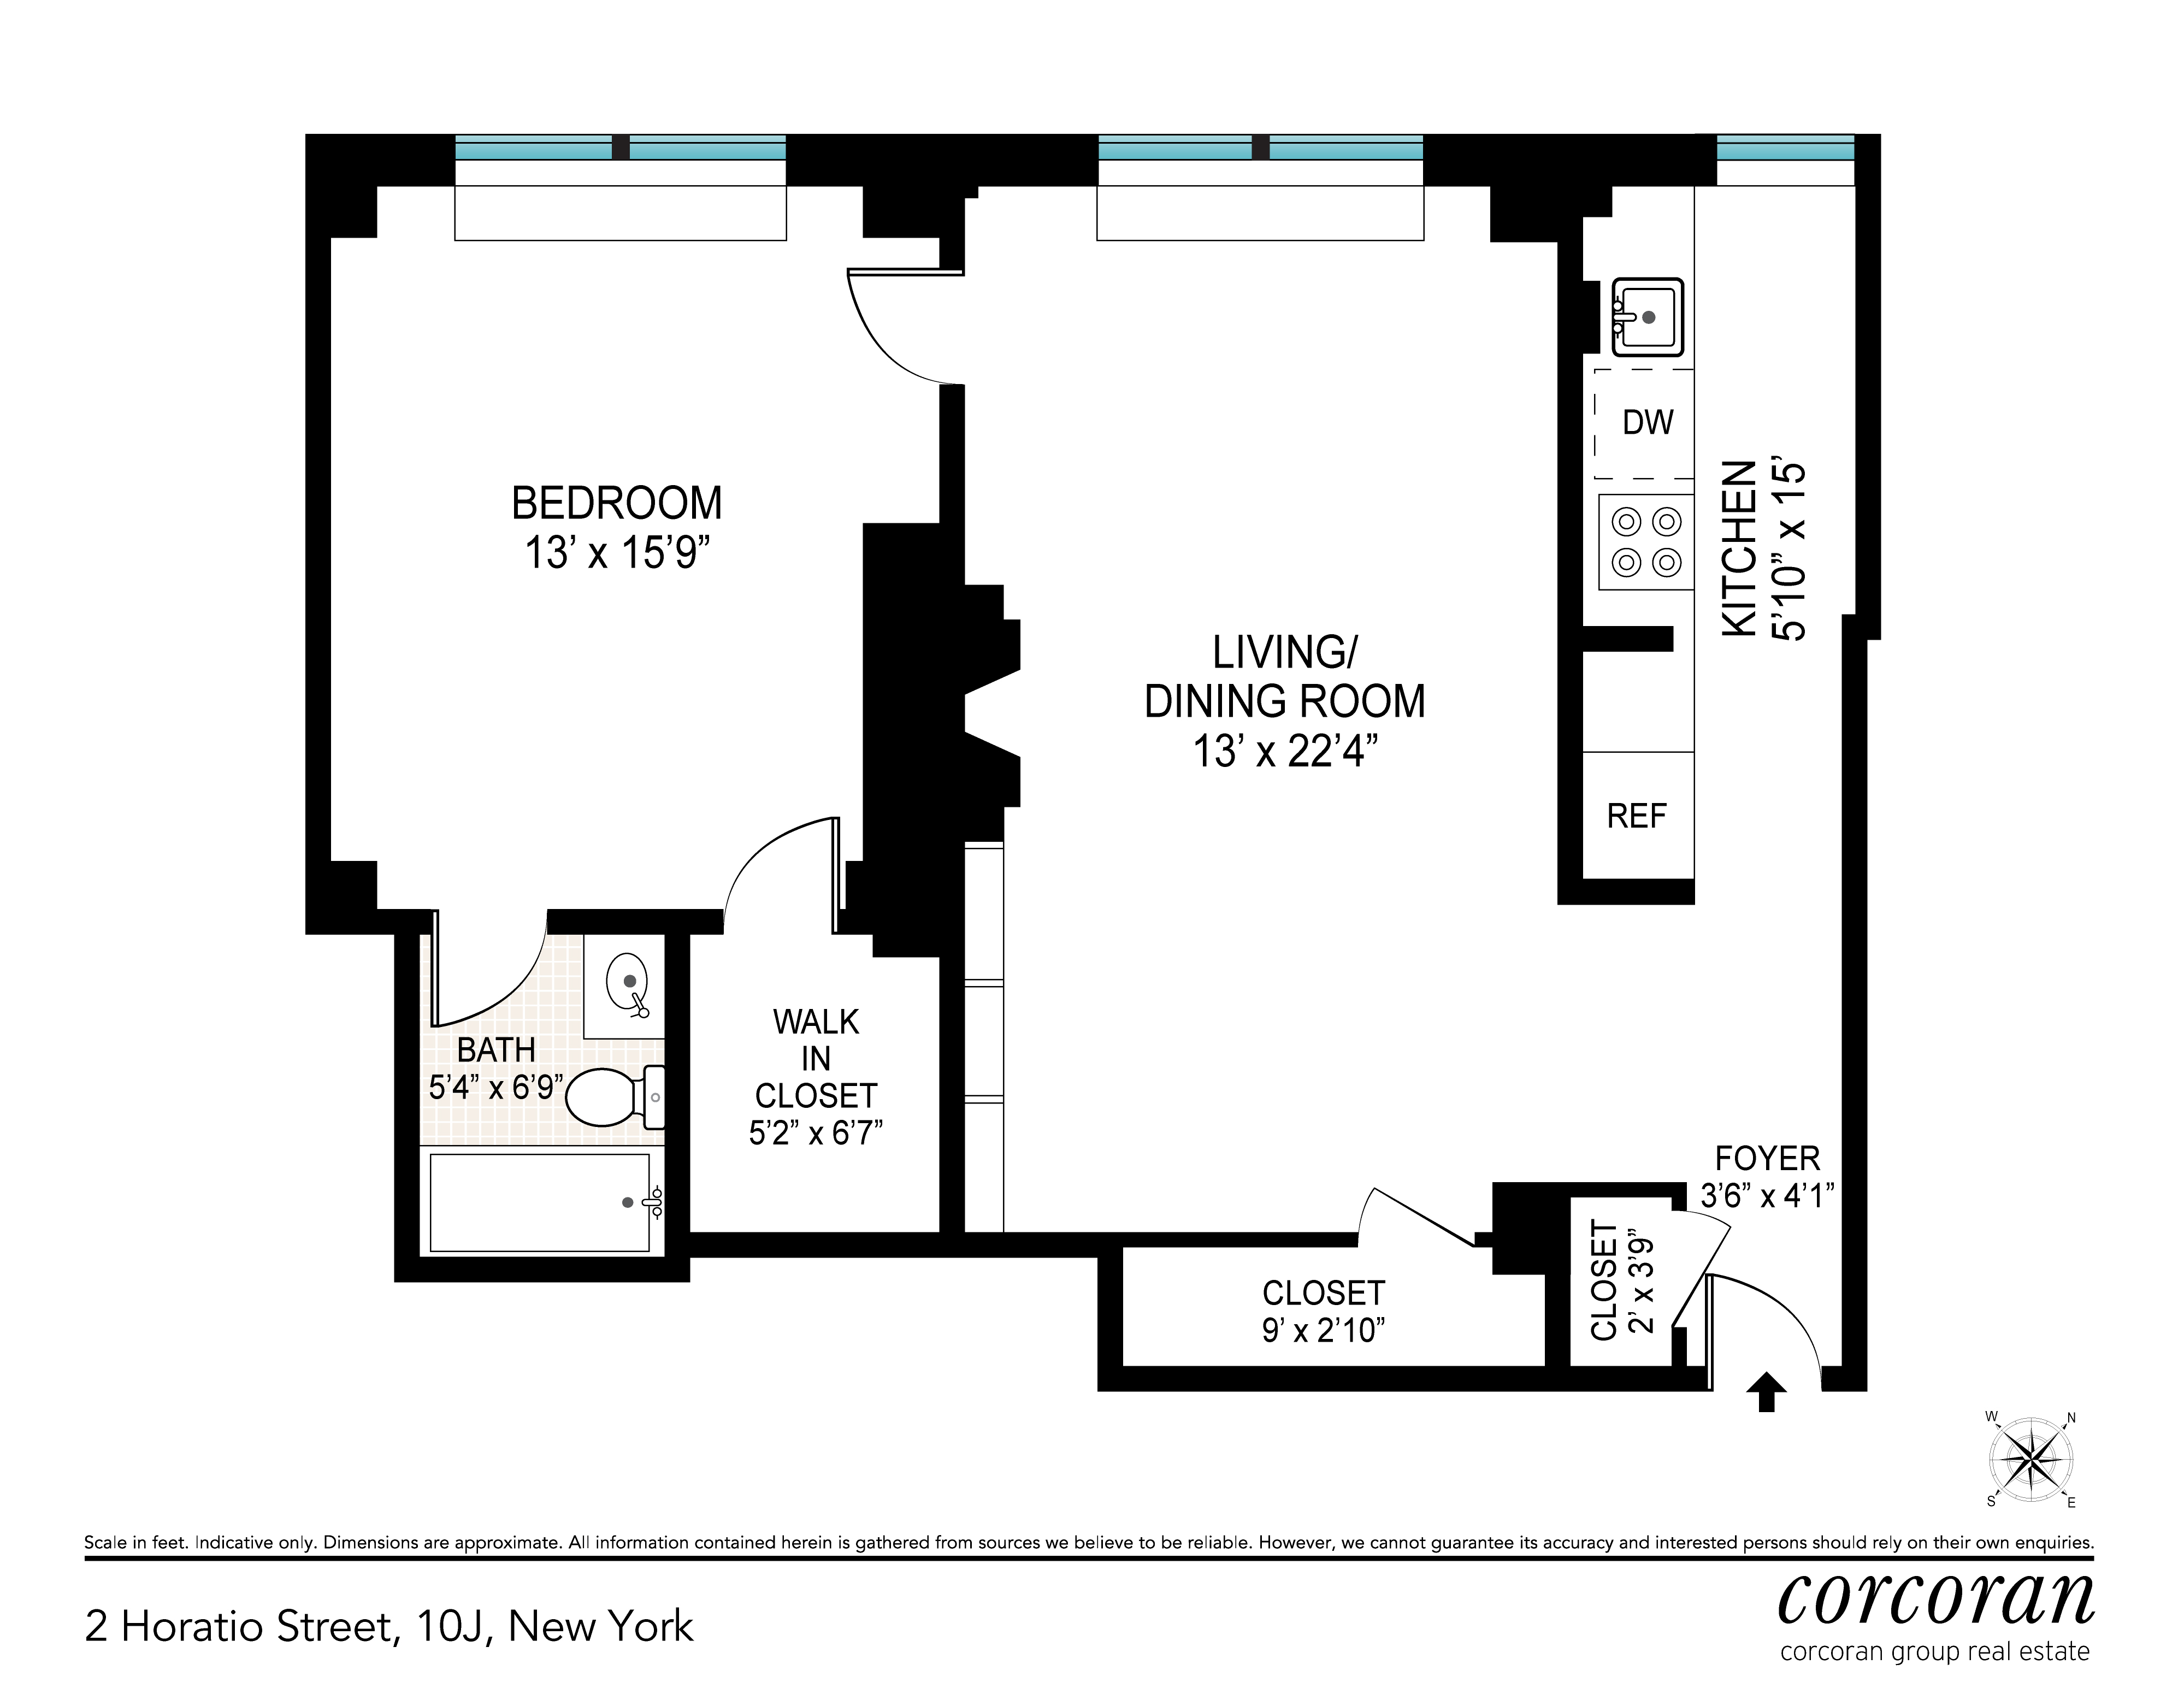 Floor plan of 2 Horatio St, 10J - West Village - Meatpacking District, New York